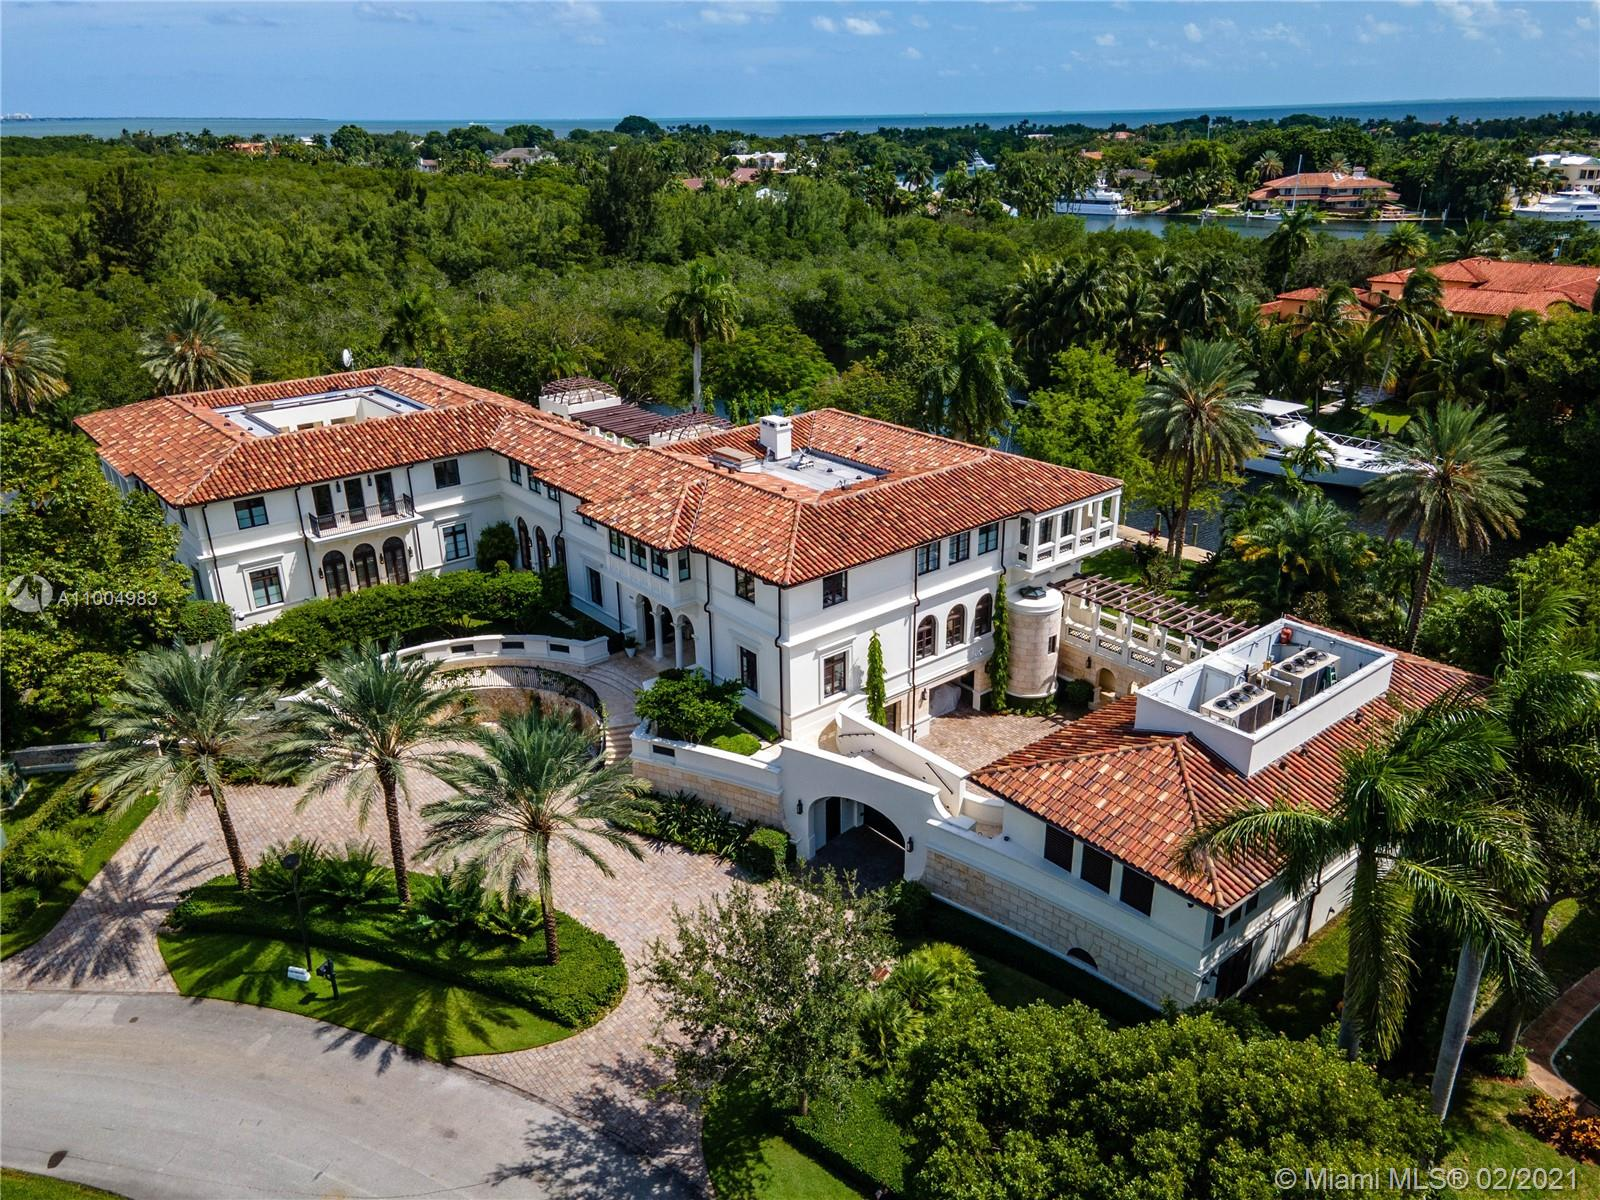 Details for 300 Costanera Rd, Coral Gables, FL 33143